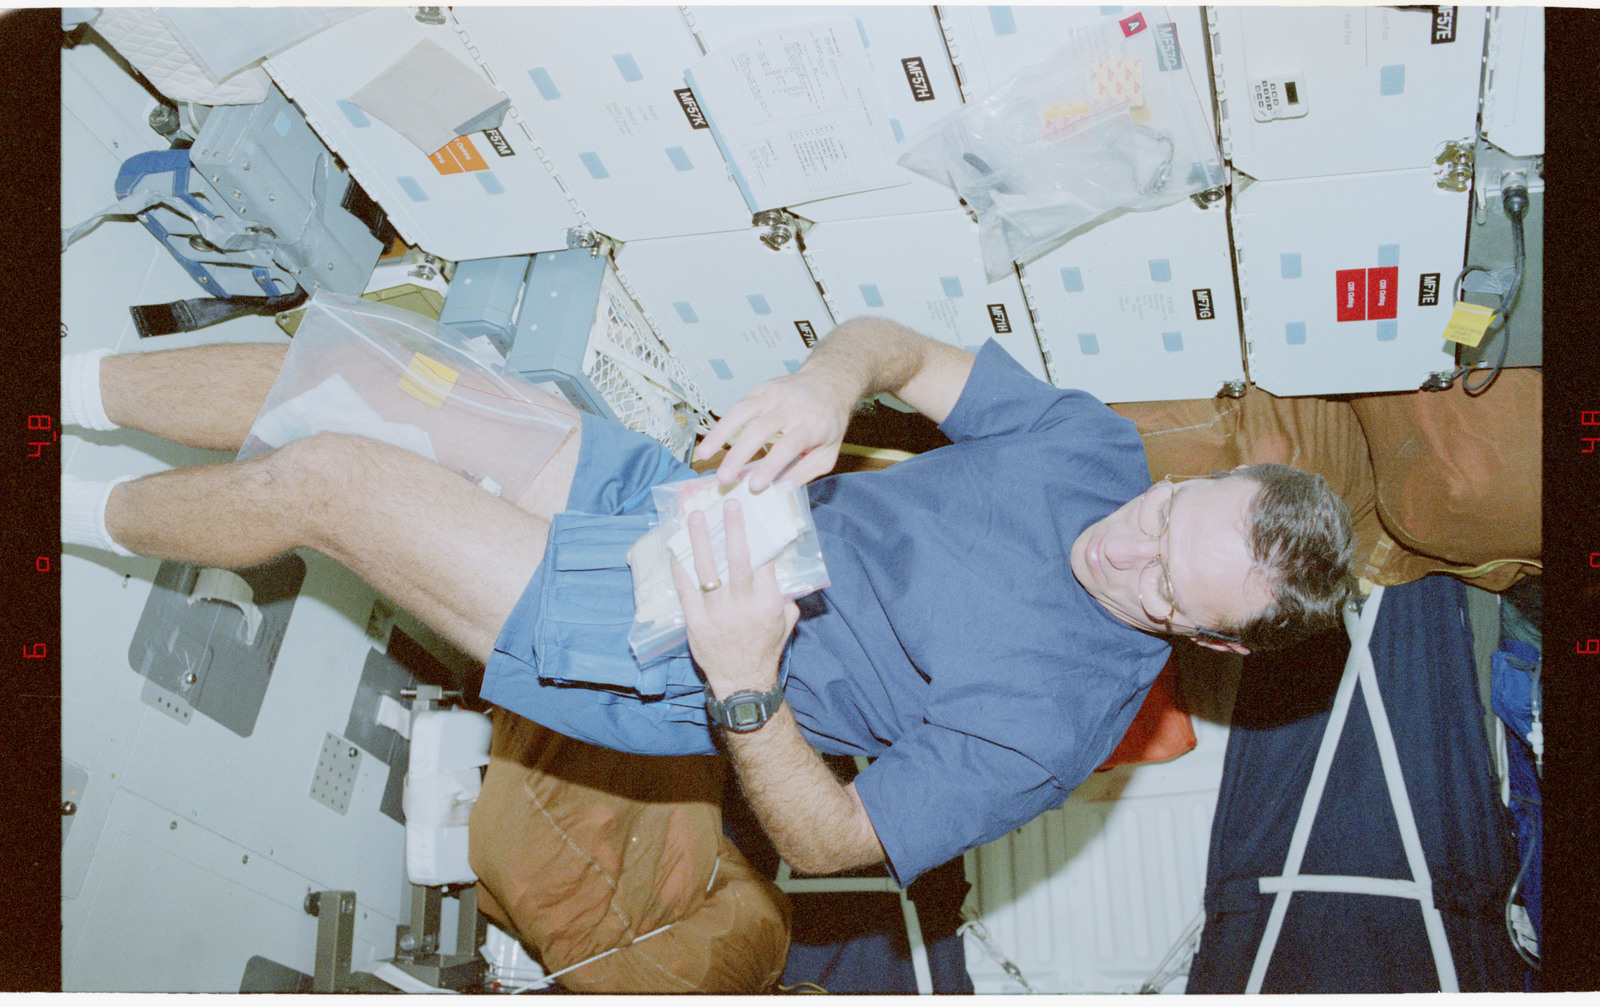 STS079-348-021 - STS-079 - STS-79 crew activities on the middeck